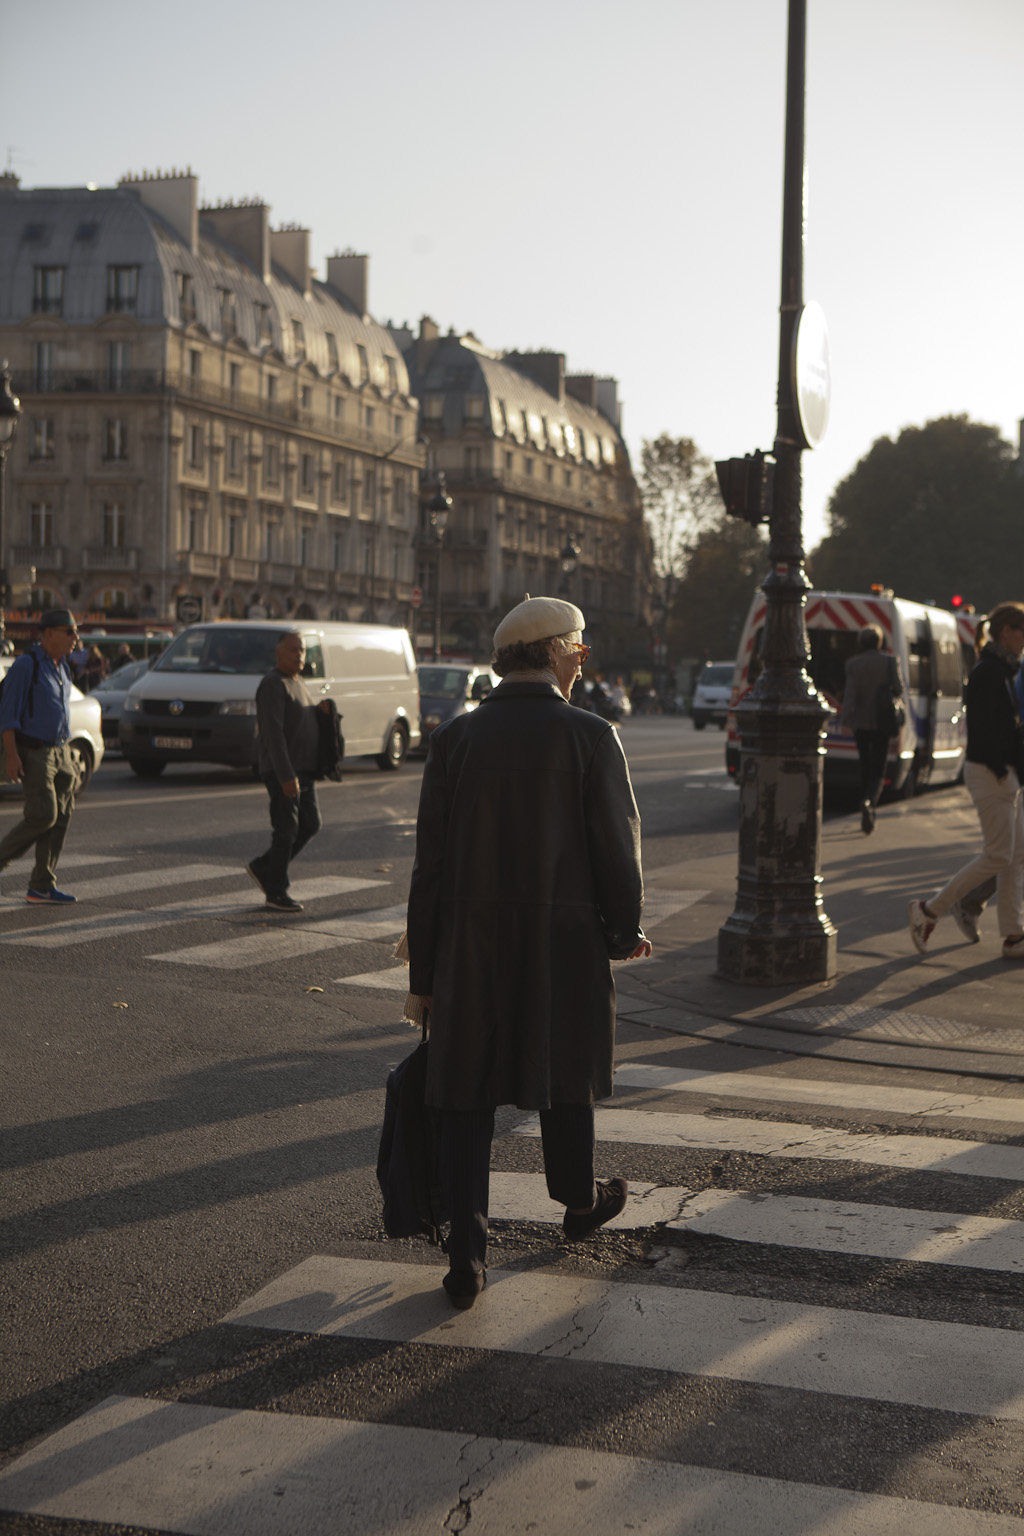 The Streets of paris, france -